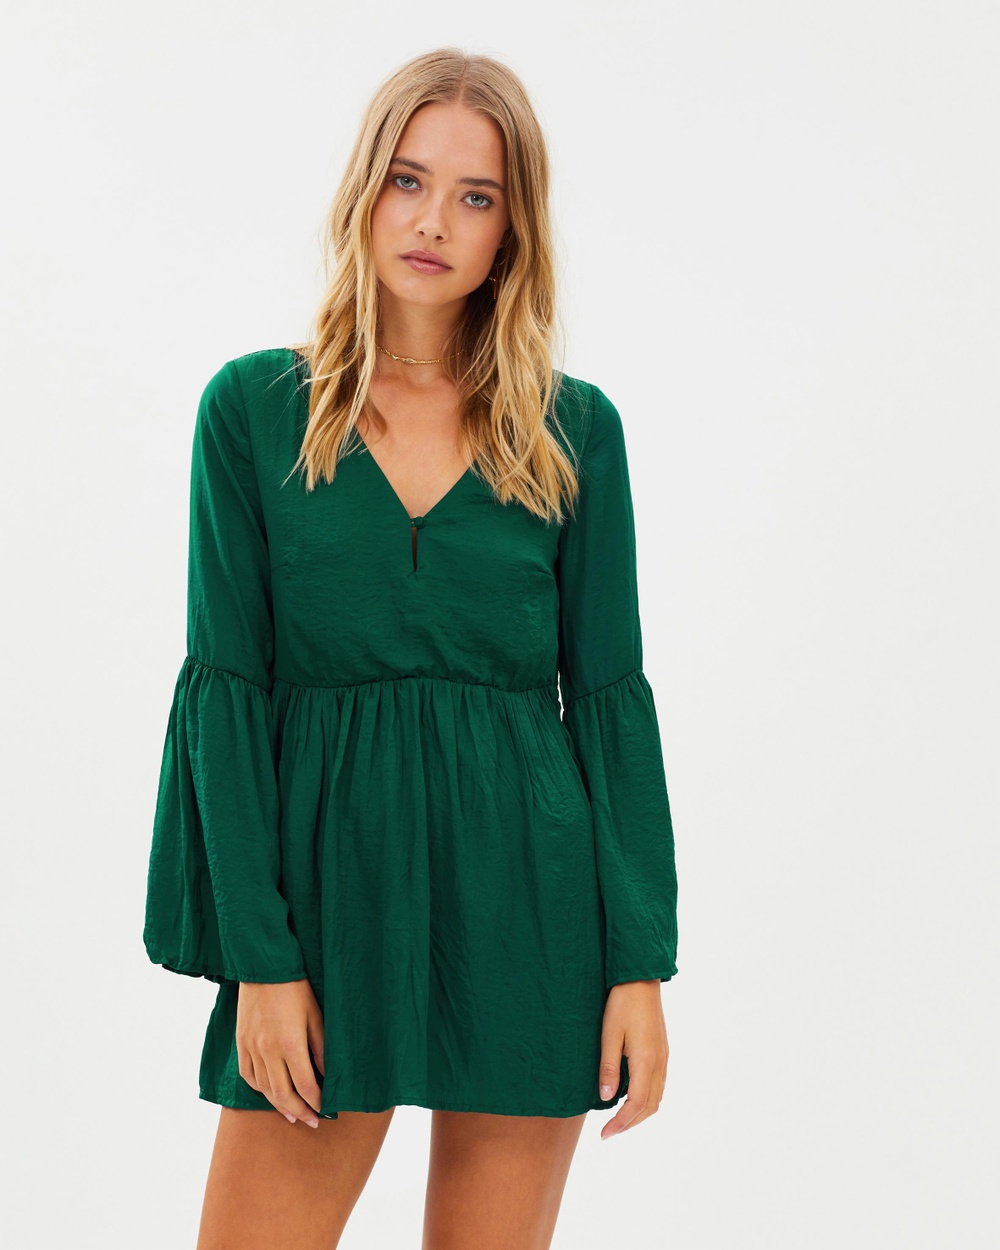 Toby Heart Ginger The Starry Eyed Dress Dresses Emerald The Starry Eyed Dress